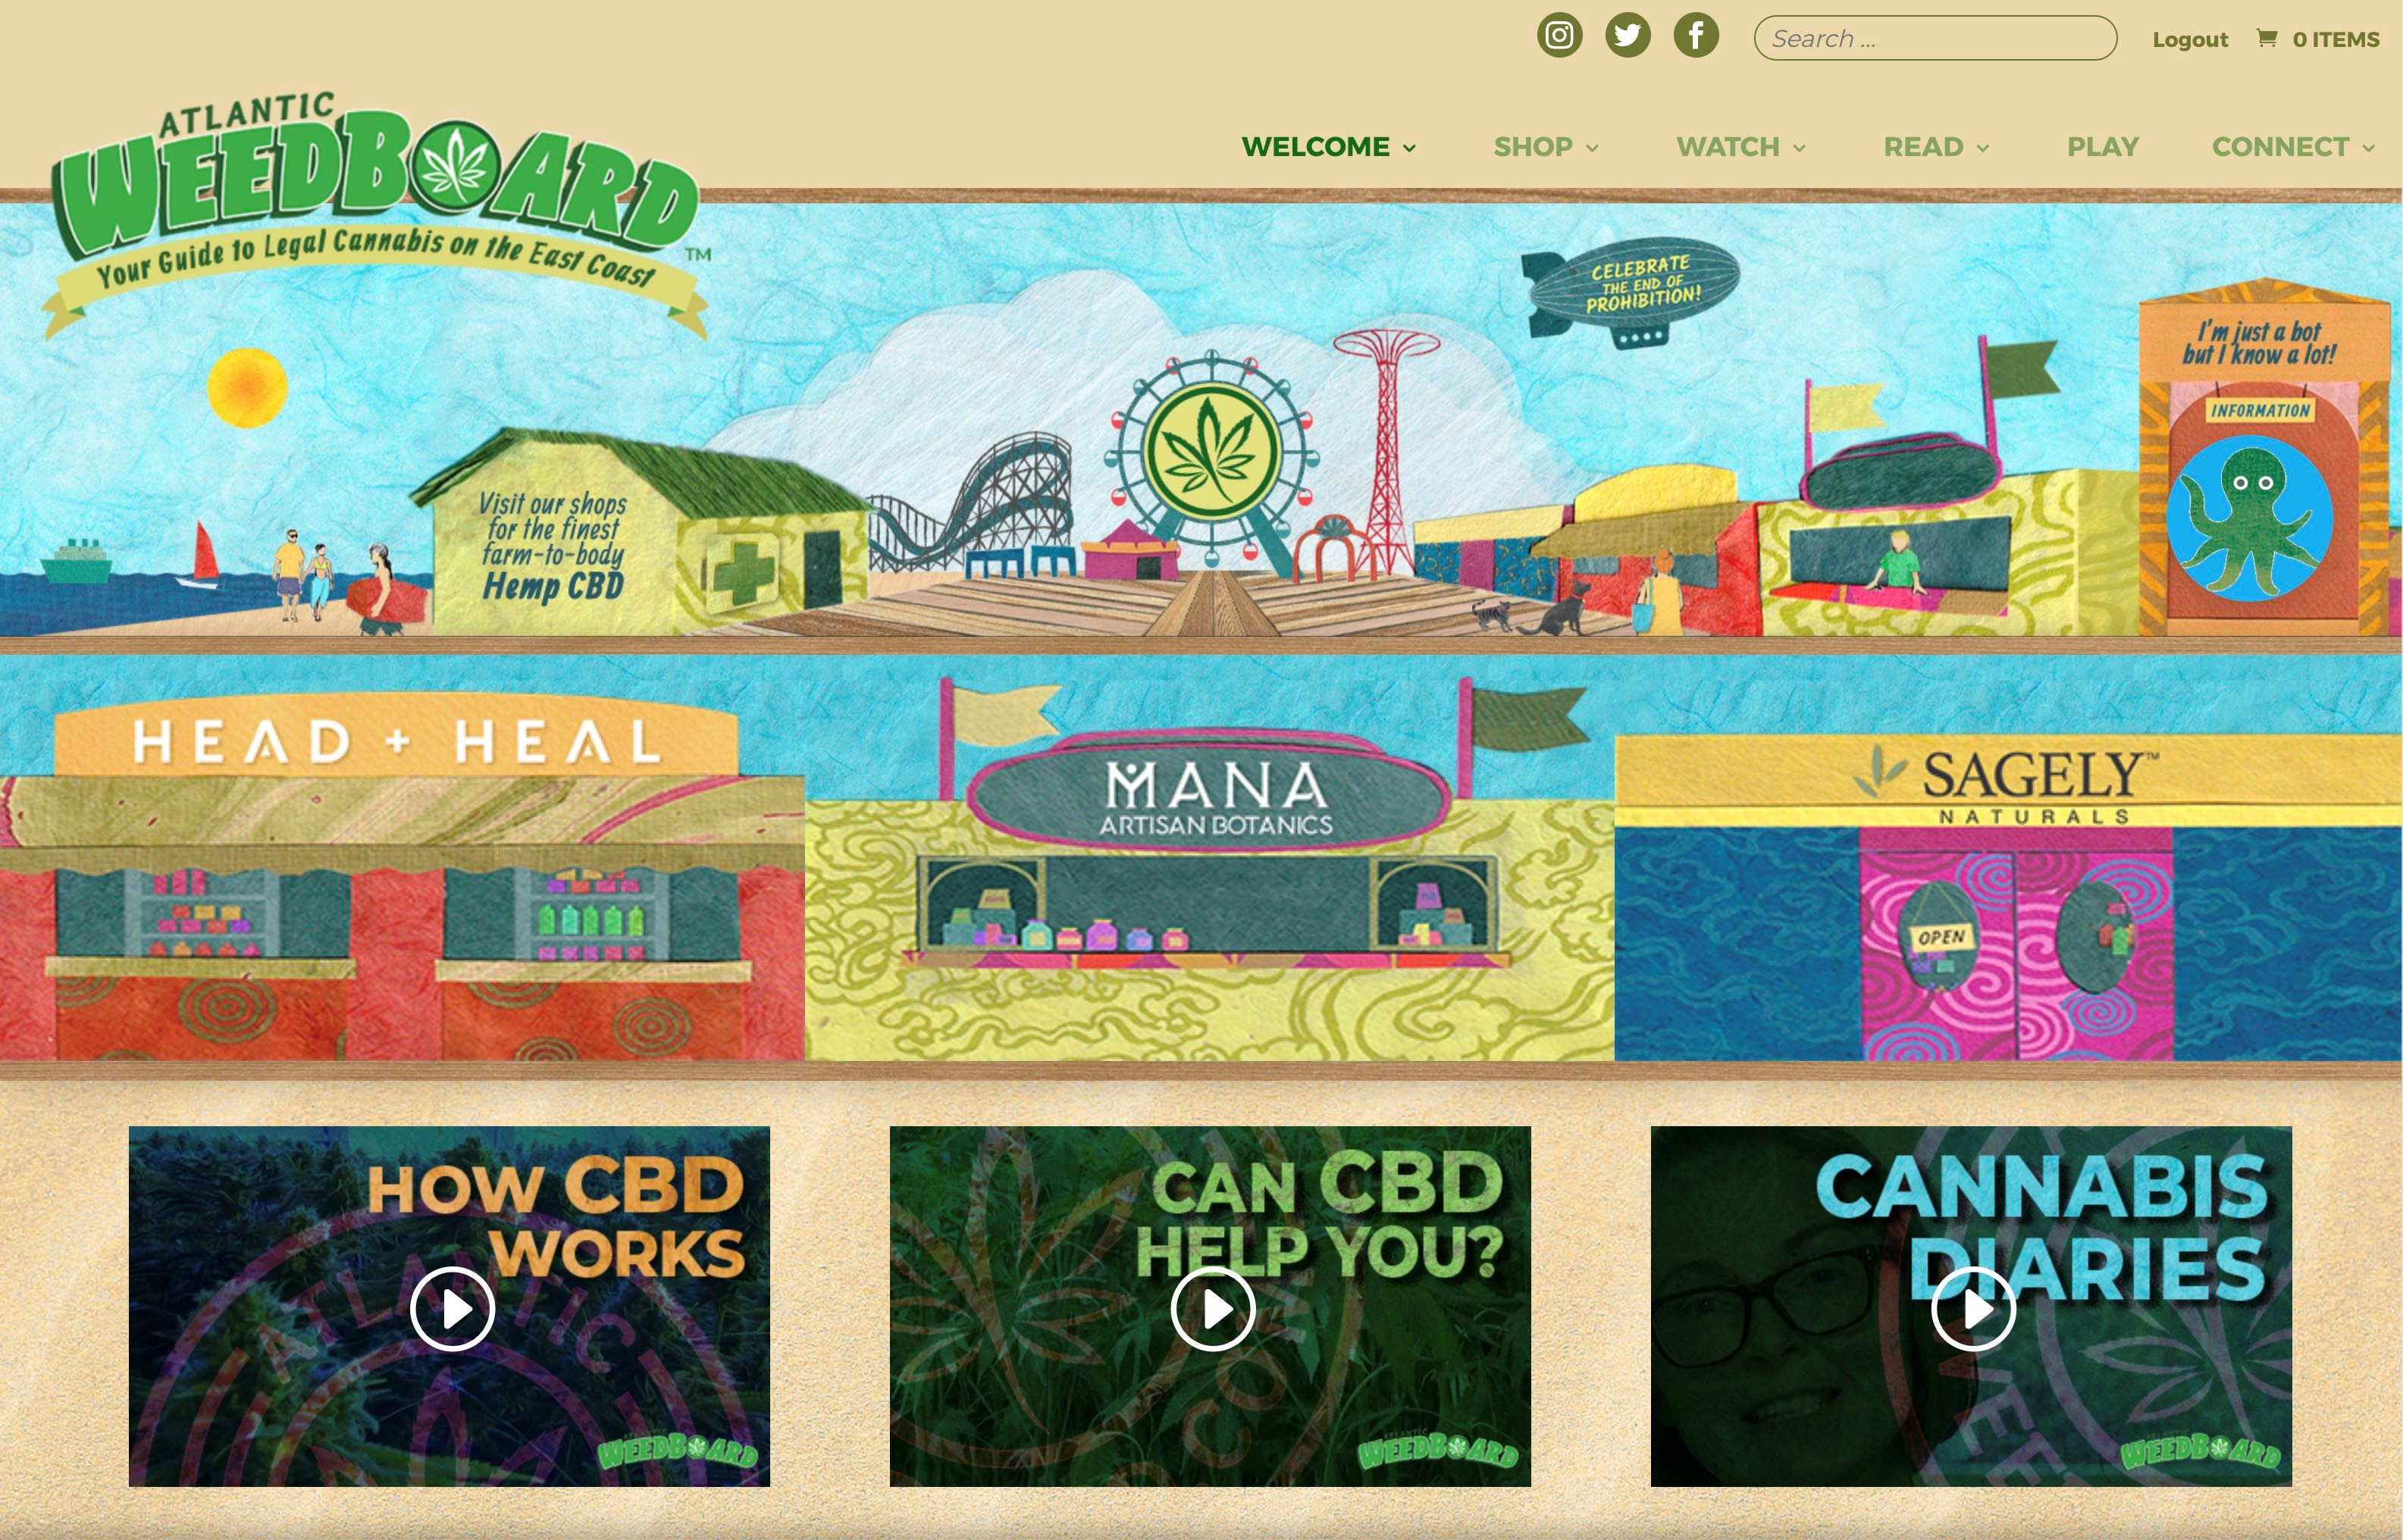 Atlantic WeedBoard.com Presents 'Five Minutes with Dr. Dina' Hollywood's Medical Marijuana Maven